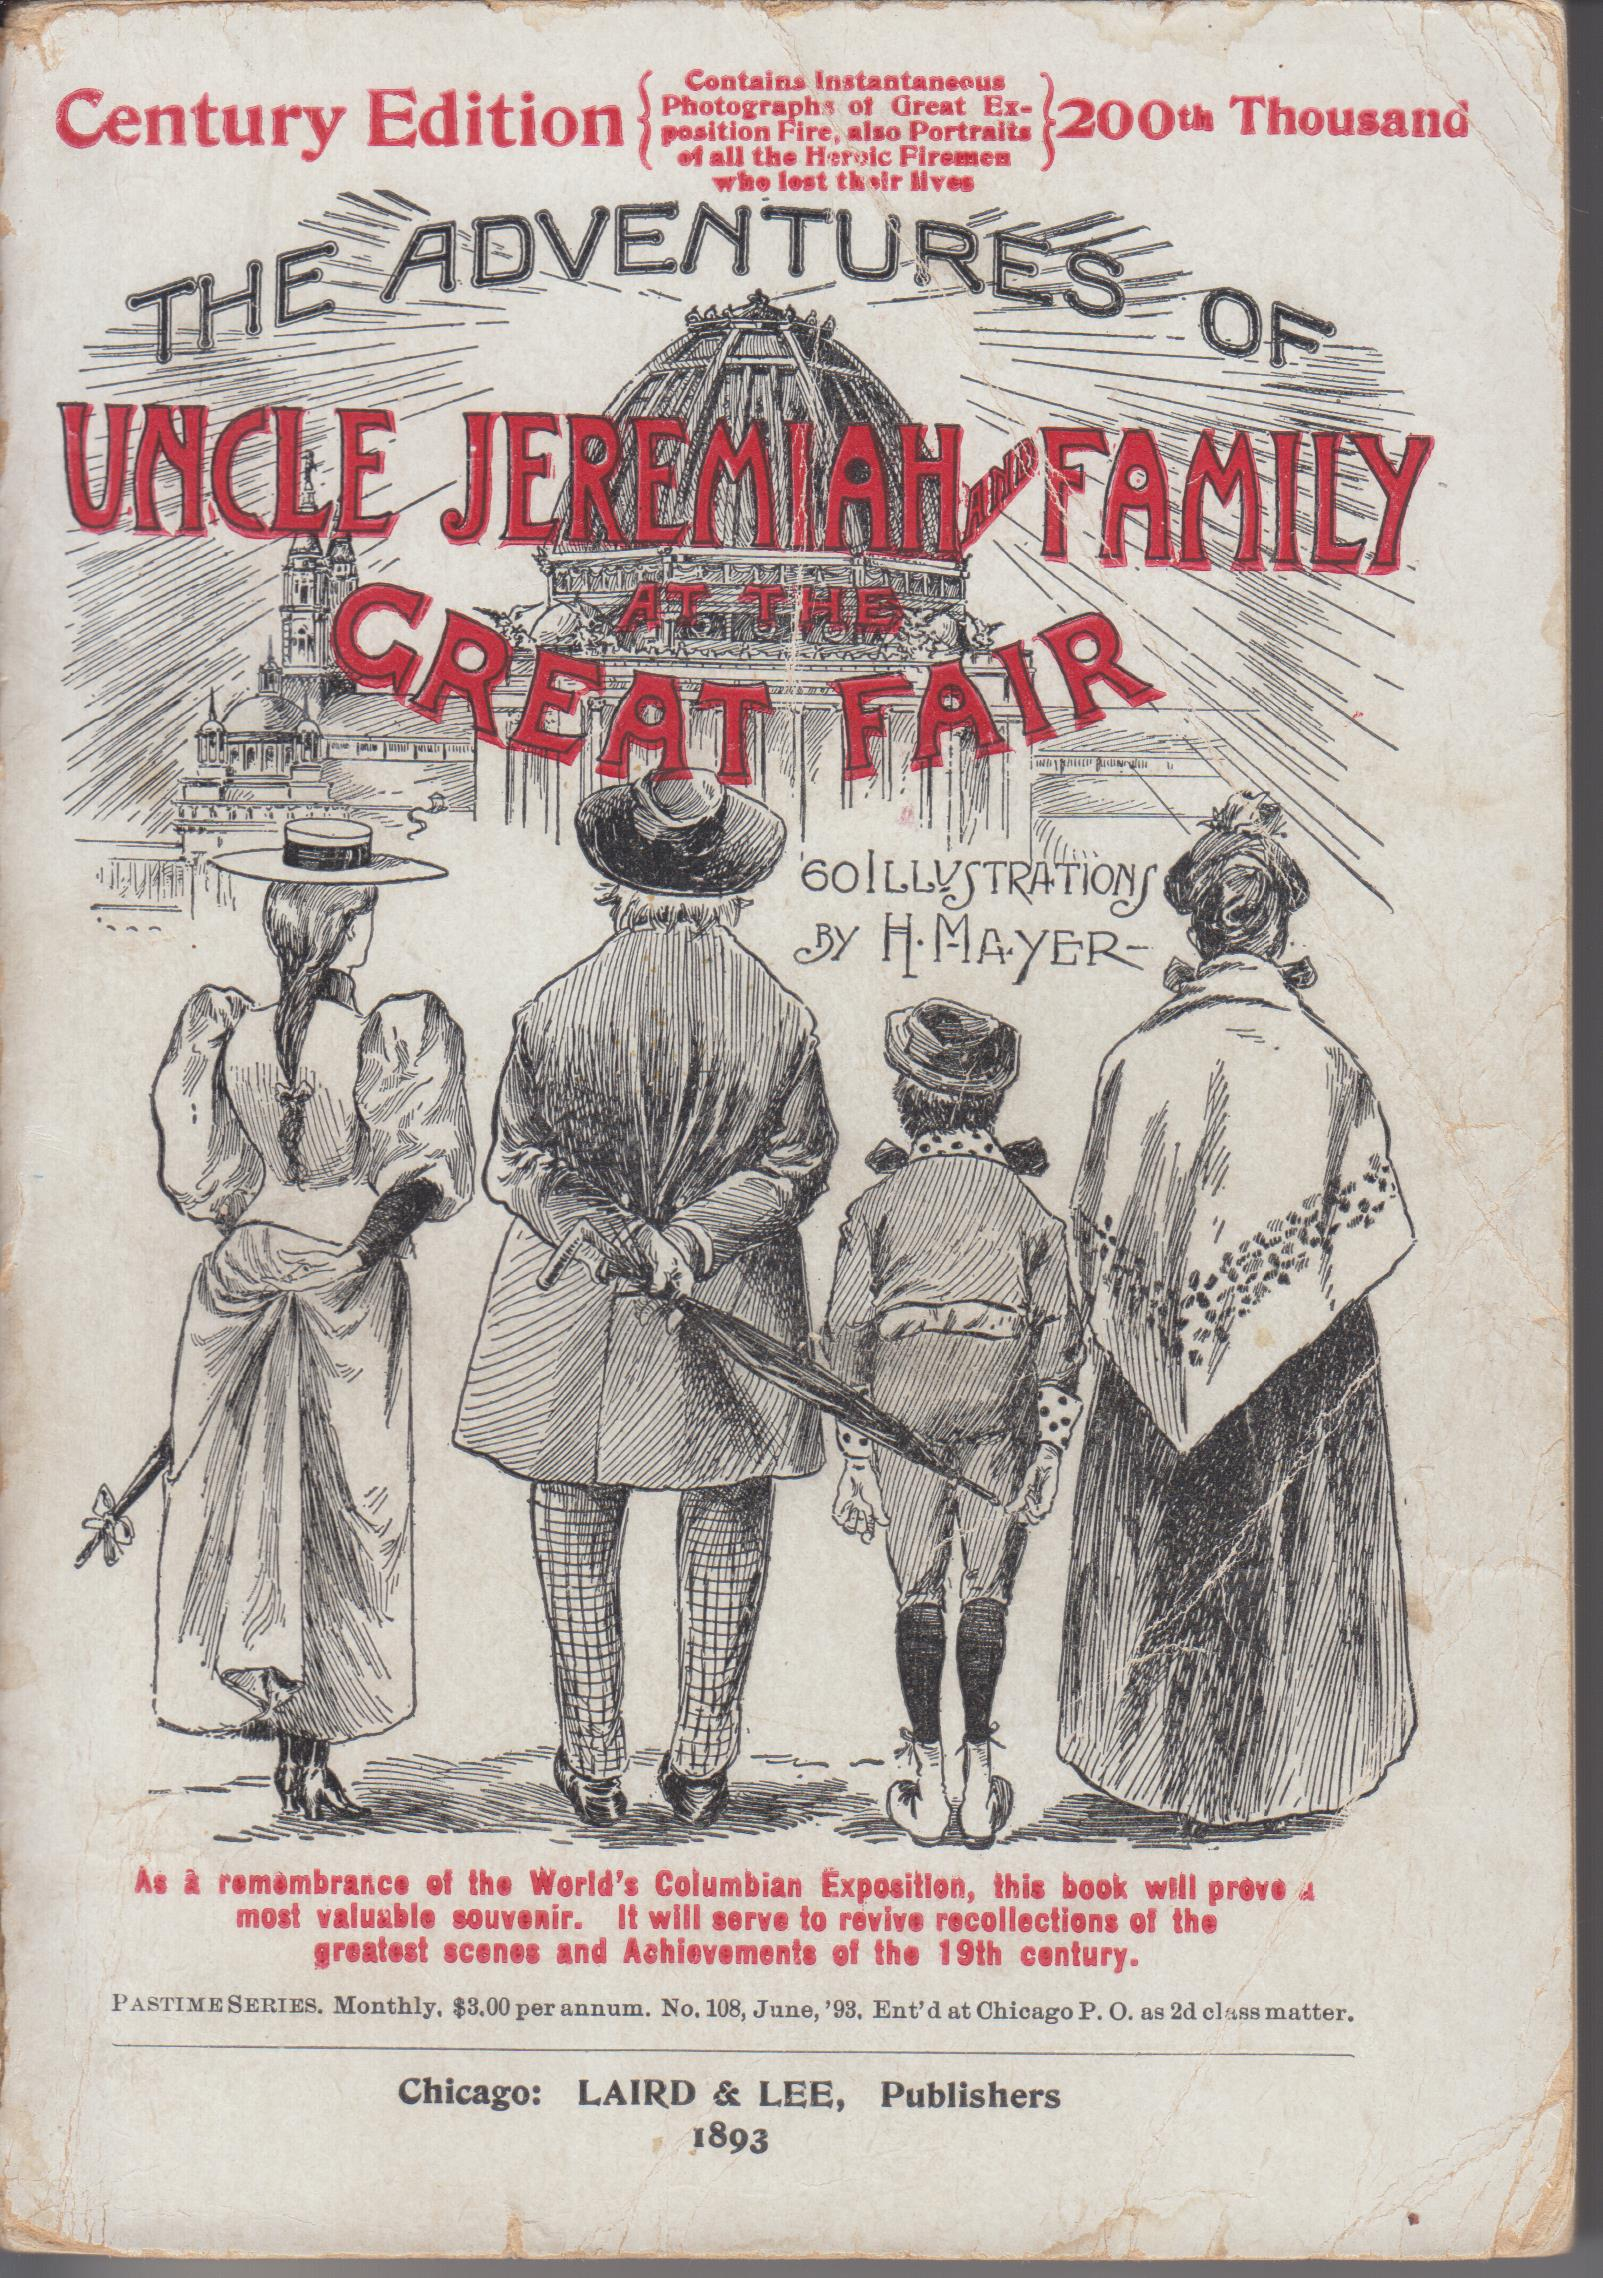 Image for Uncle Jeremiah and Family at the Great Fair. Their Observations and Triumphs